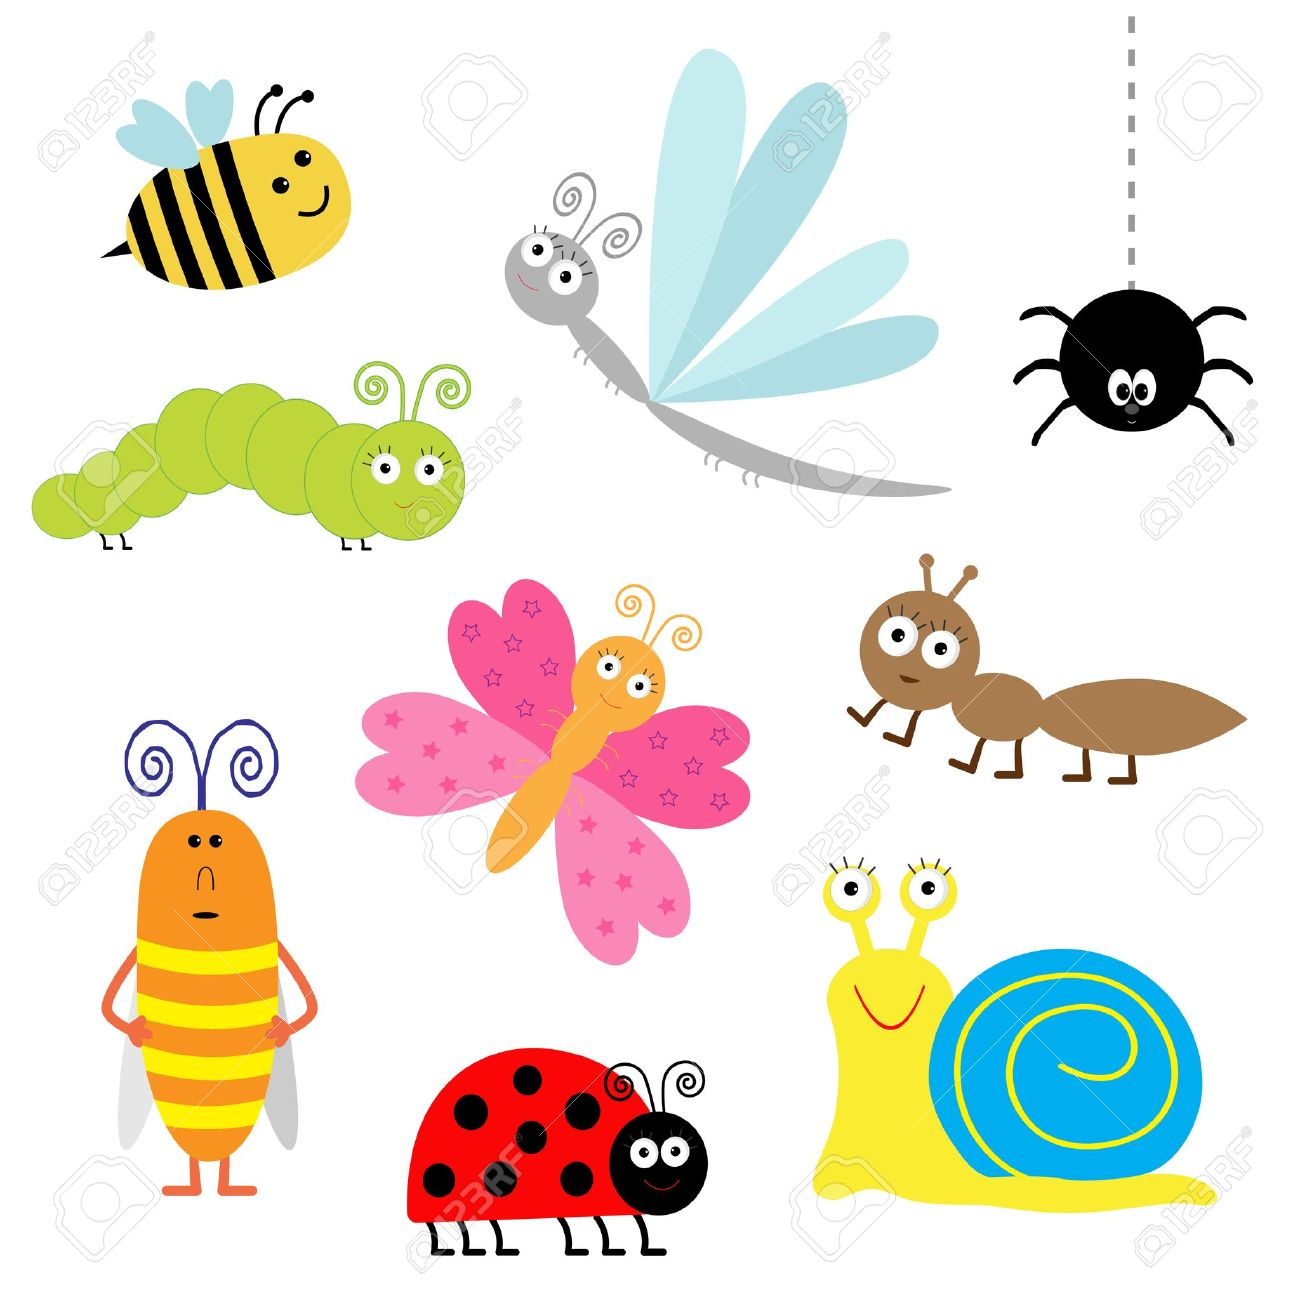 Cute Cartoon Insect Set. Ladybug, Dragonfly, Butterfly.